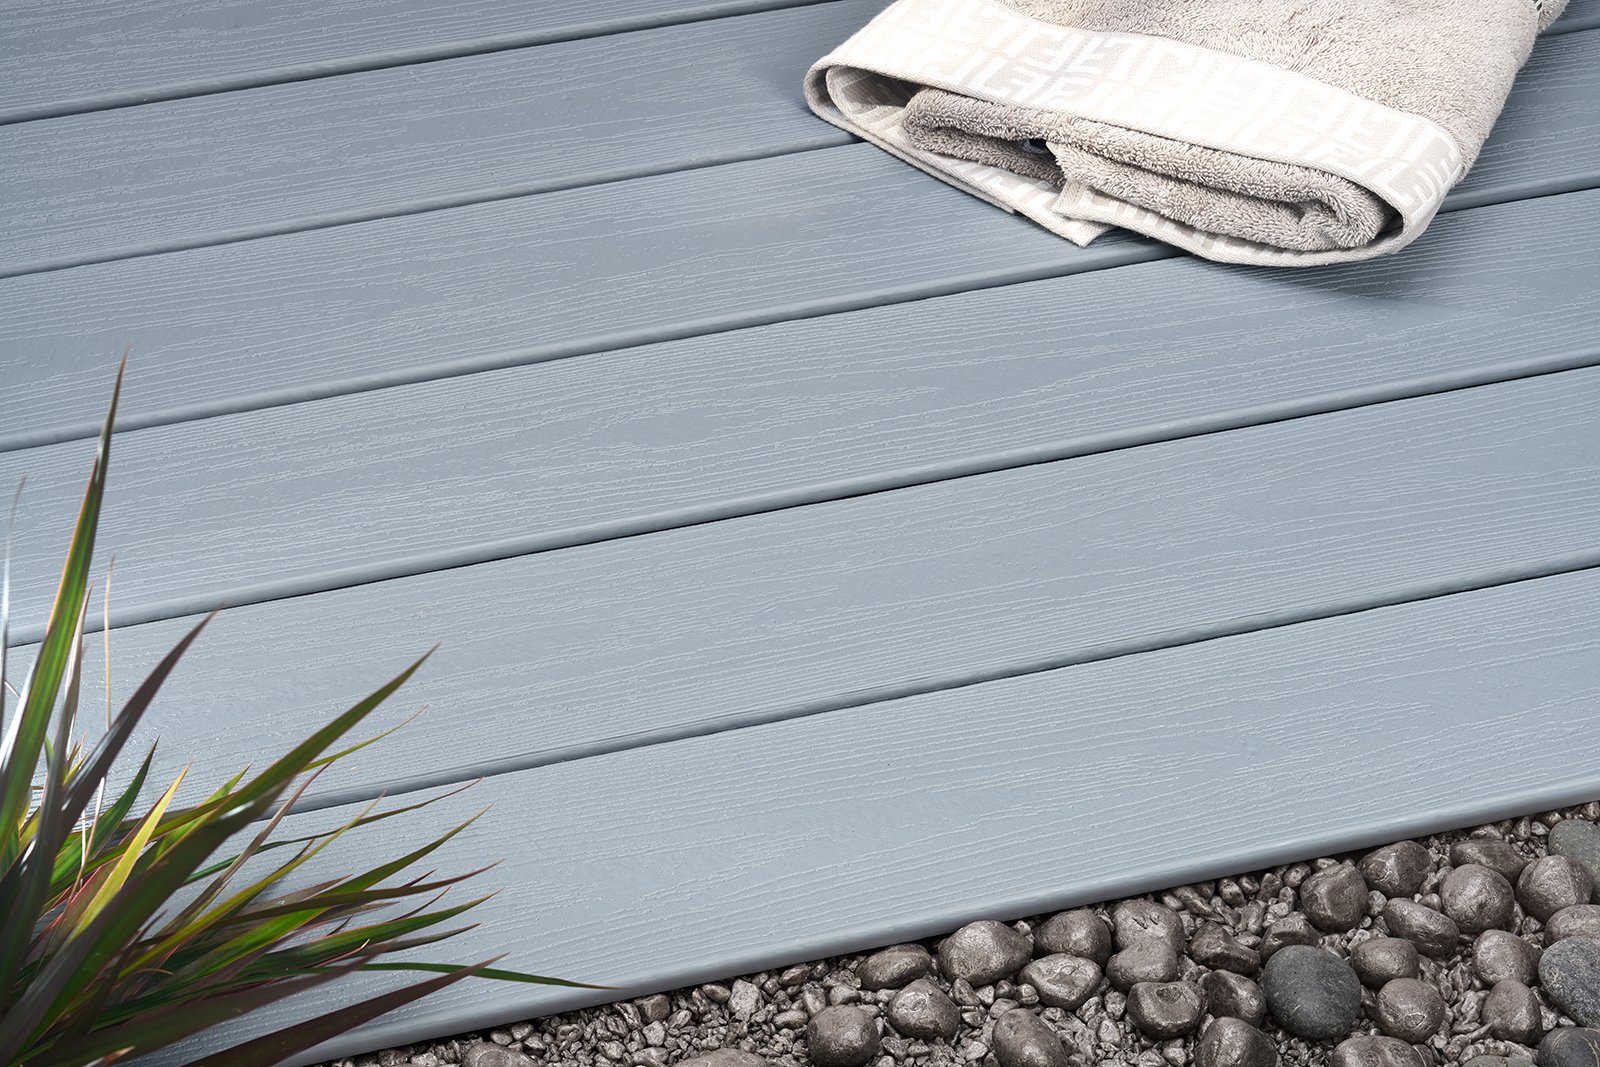 This decking board product made of biocomposite contains 75% recycled materials. Photo: UPM